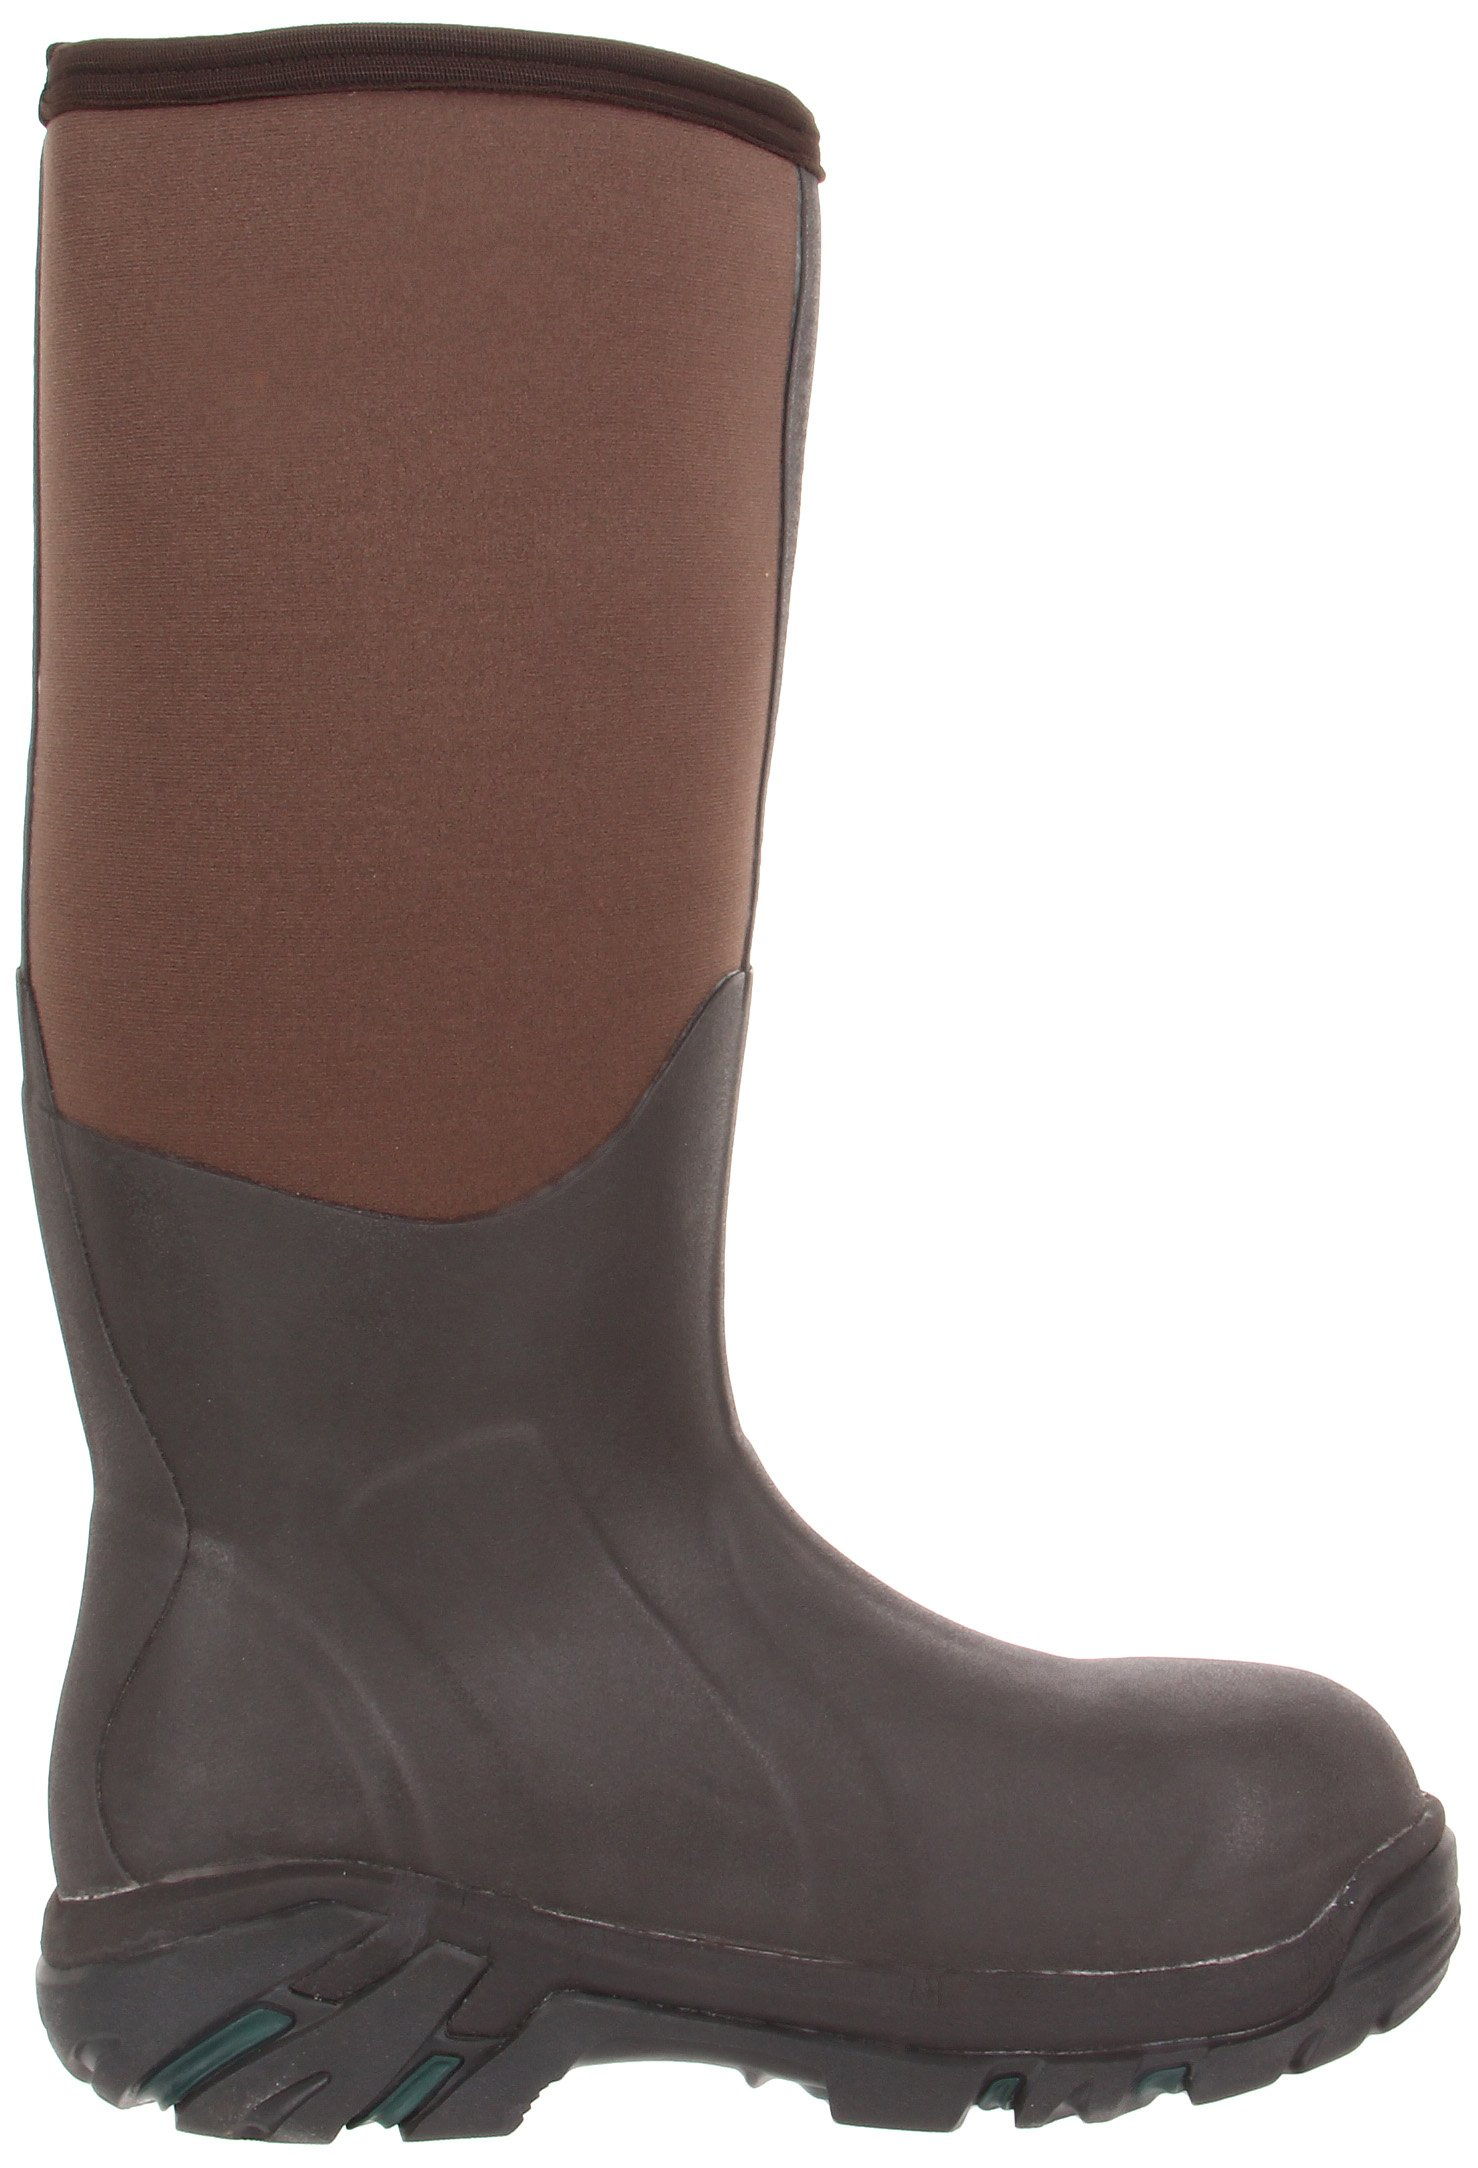 MuckBoots Men's Arctic Pro Hunting Boot,Bark,12 M US Mens by Muck Boot (Image #6)